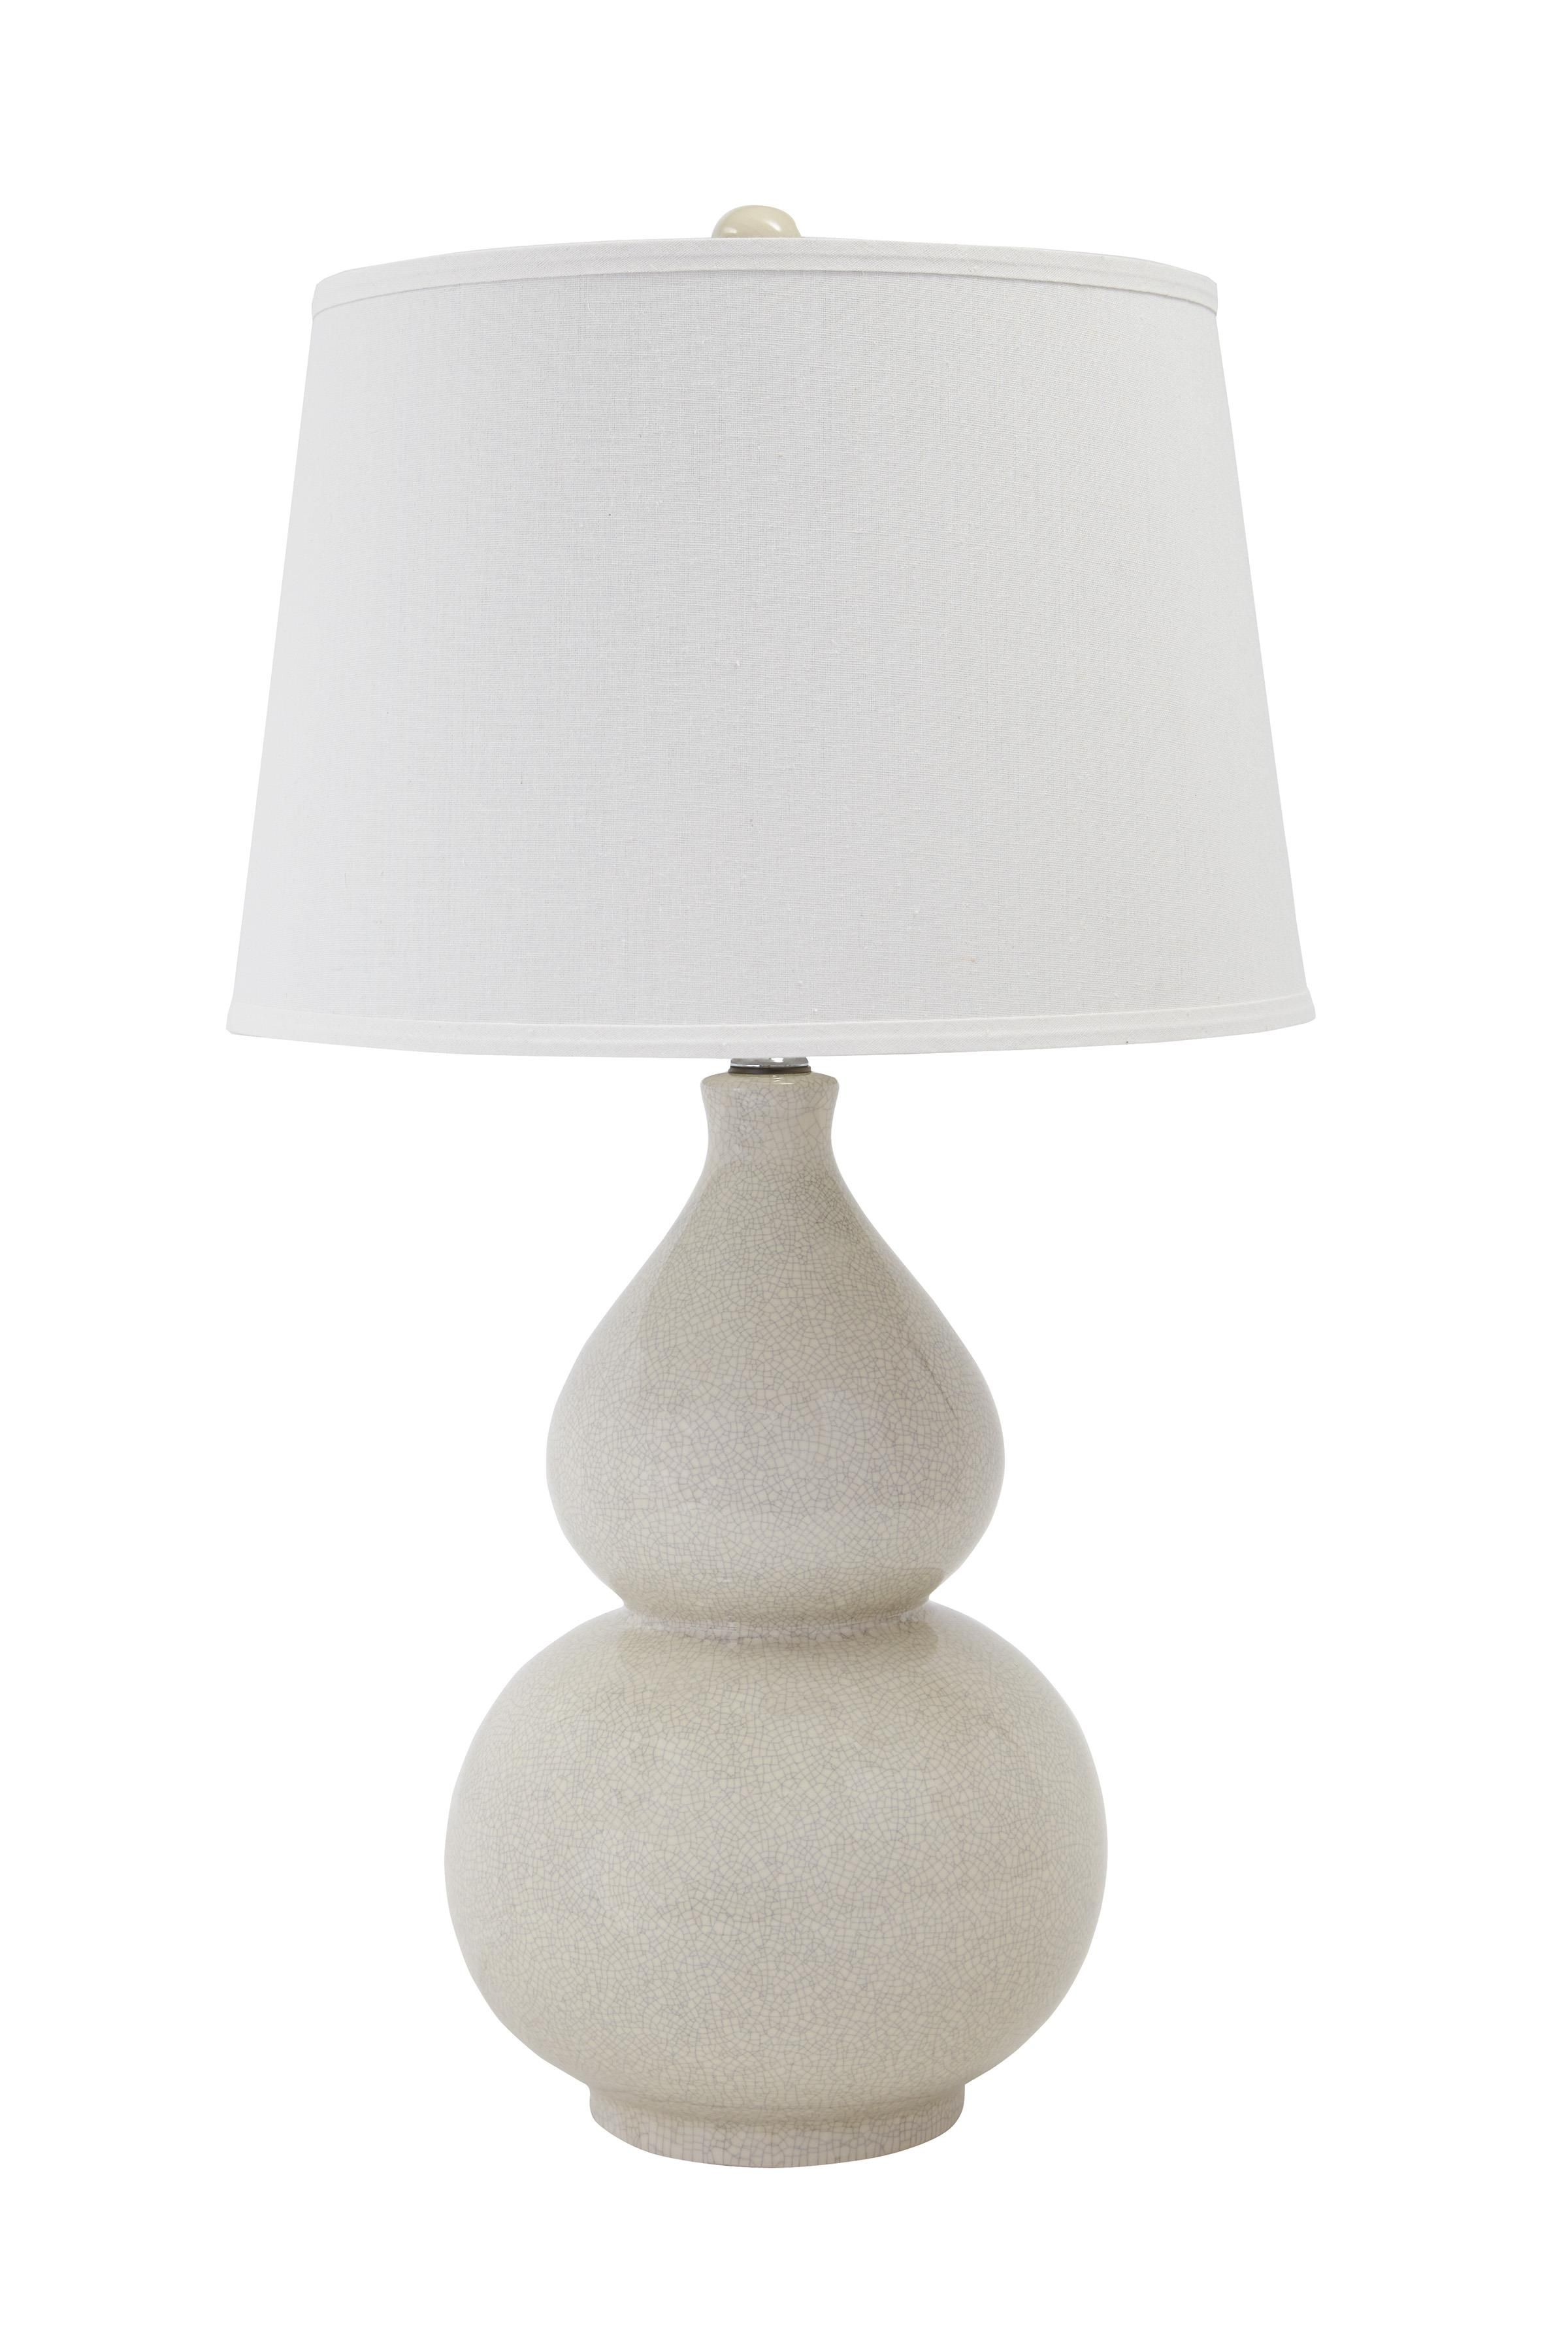 Signature Design by Ashley Lamps - Contemporary Ceramic Table Lamp  - Item Number: L100074